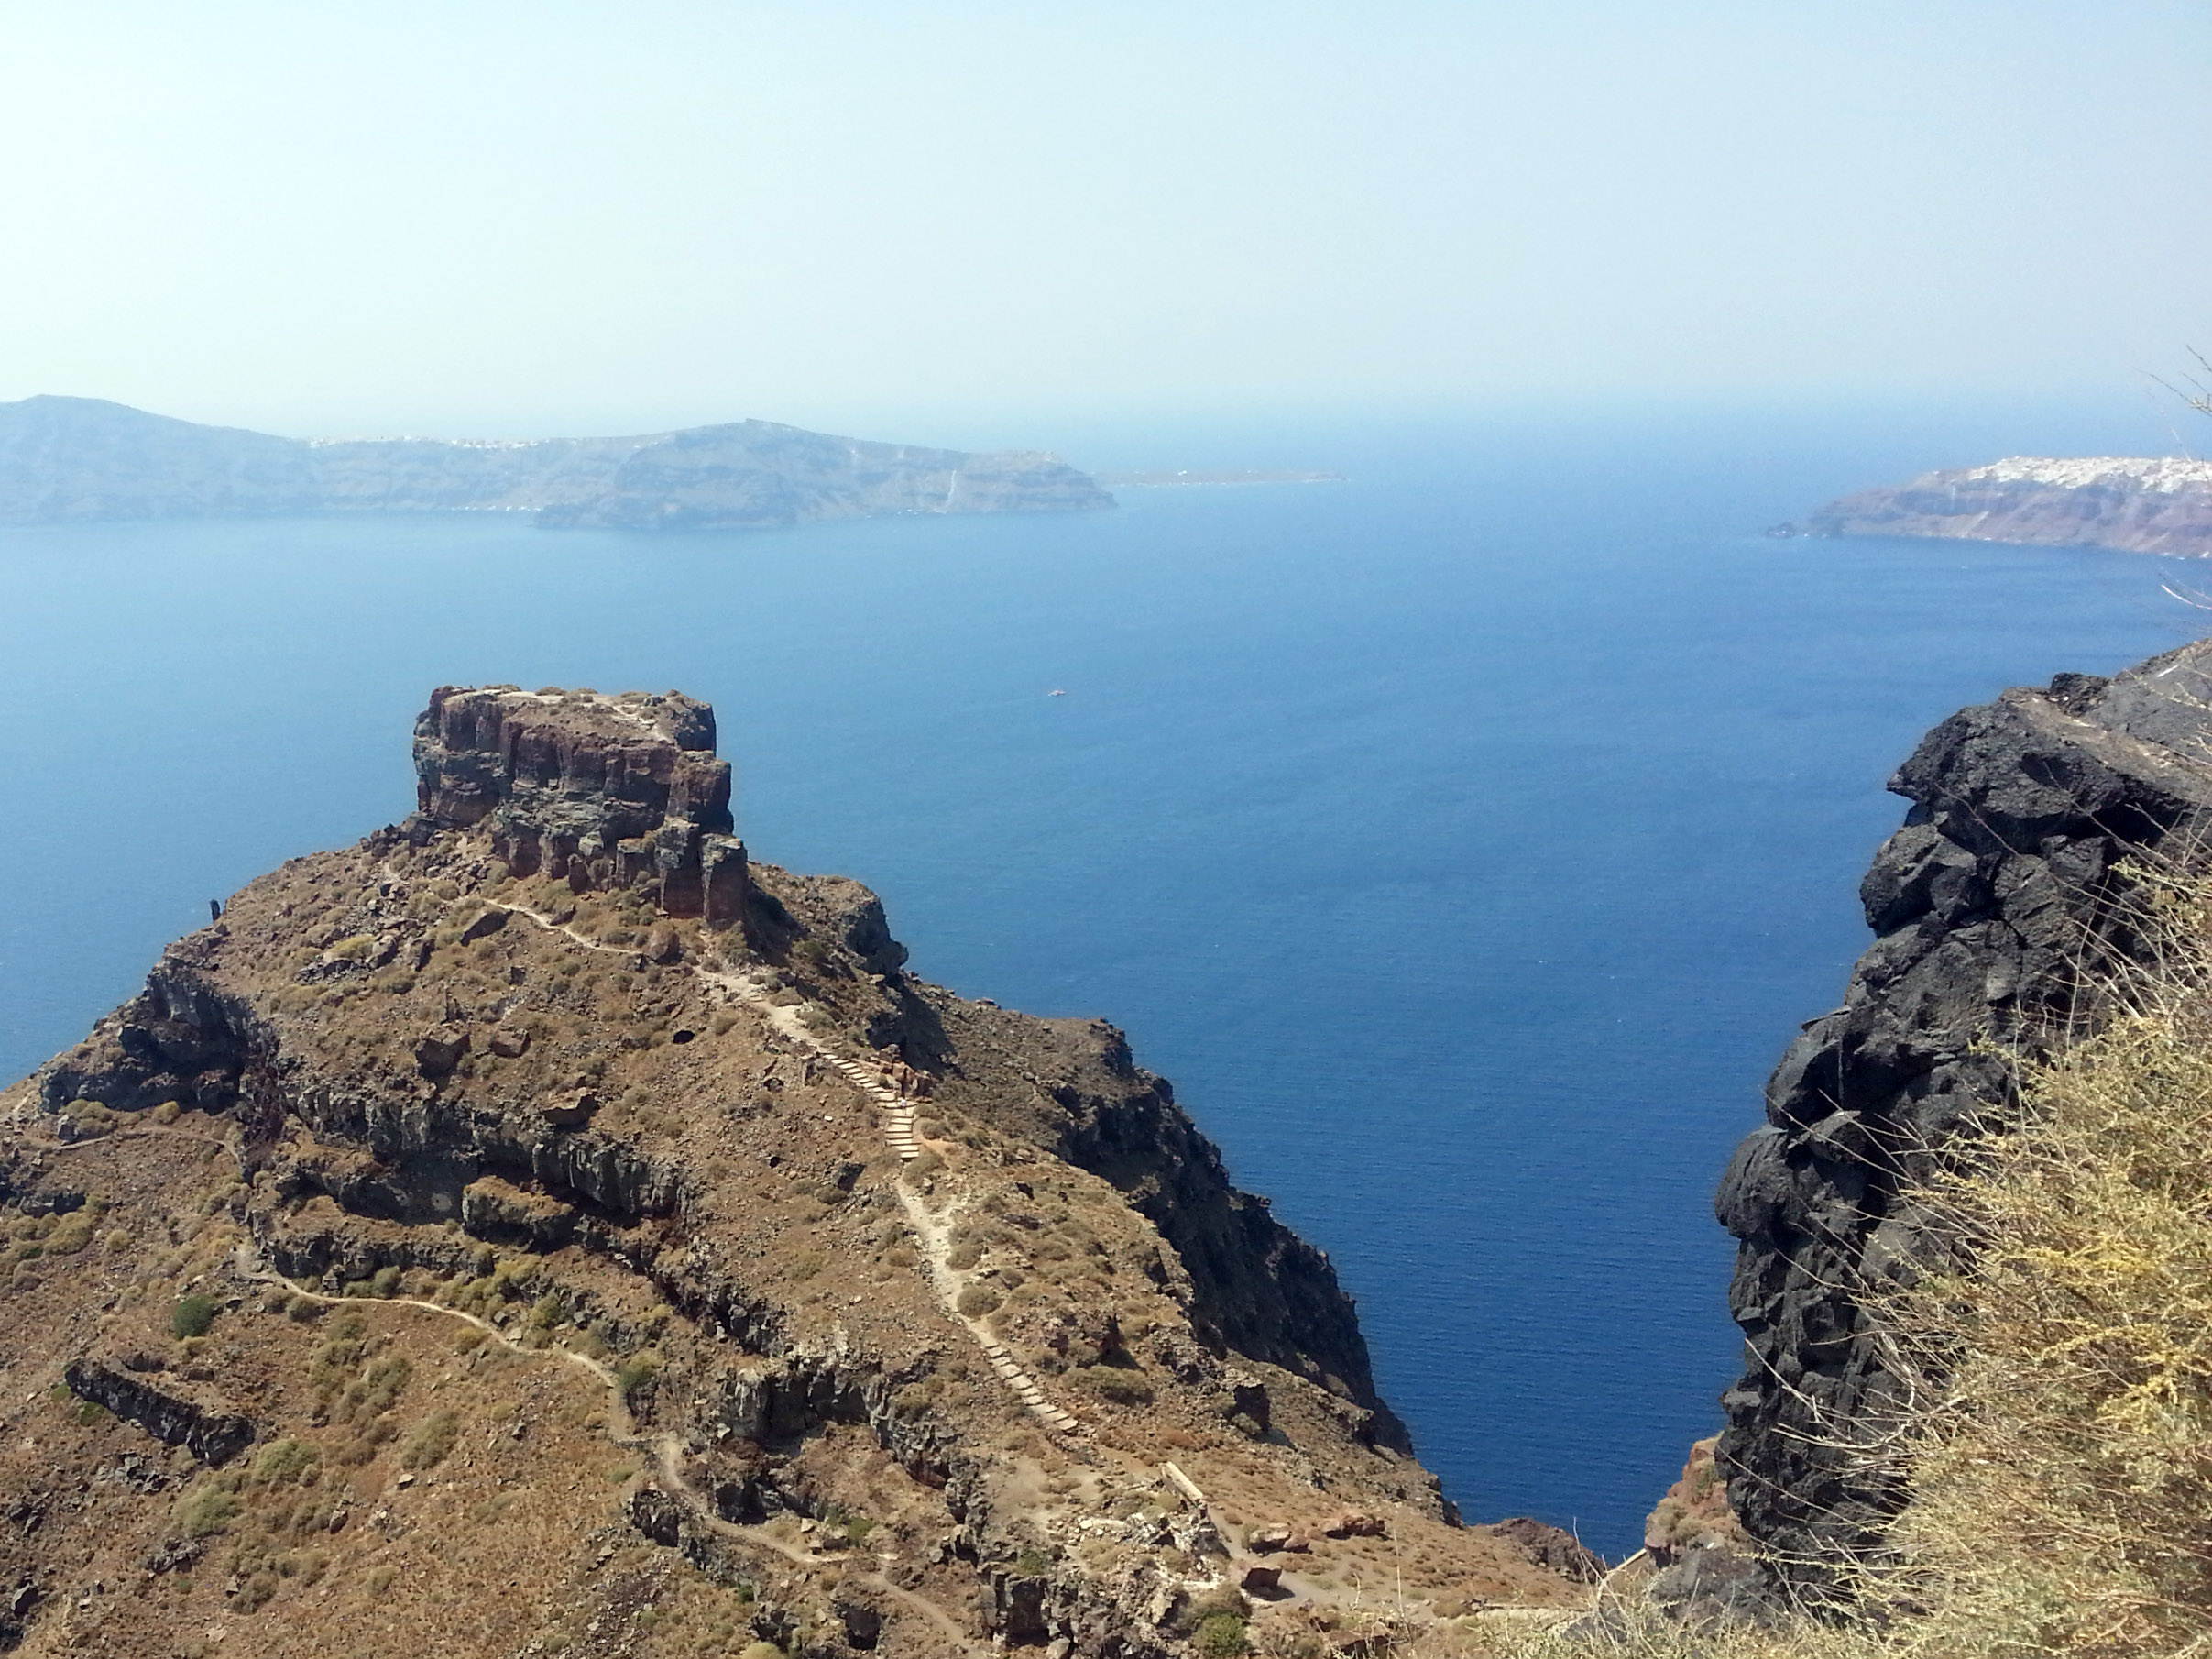 The caldera of Santorini. That's Oia off to the right.